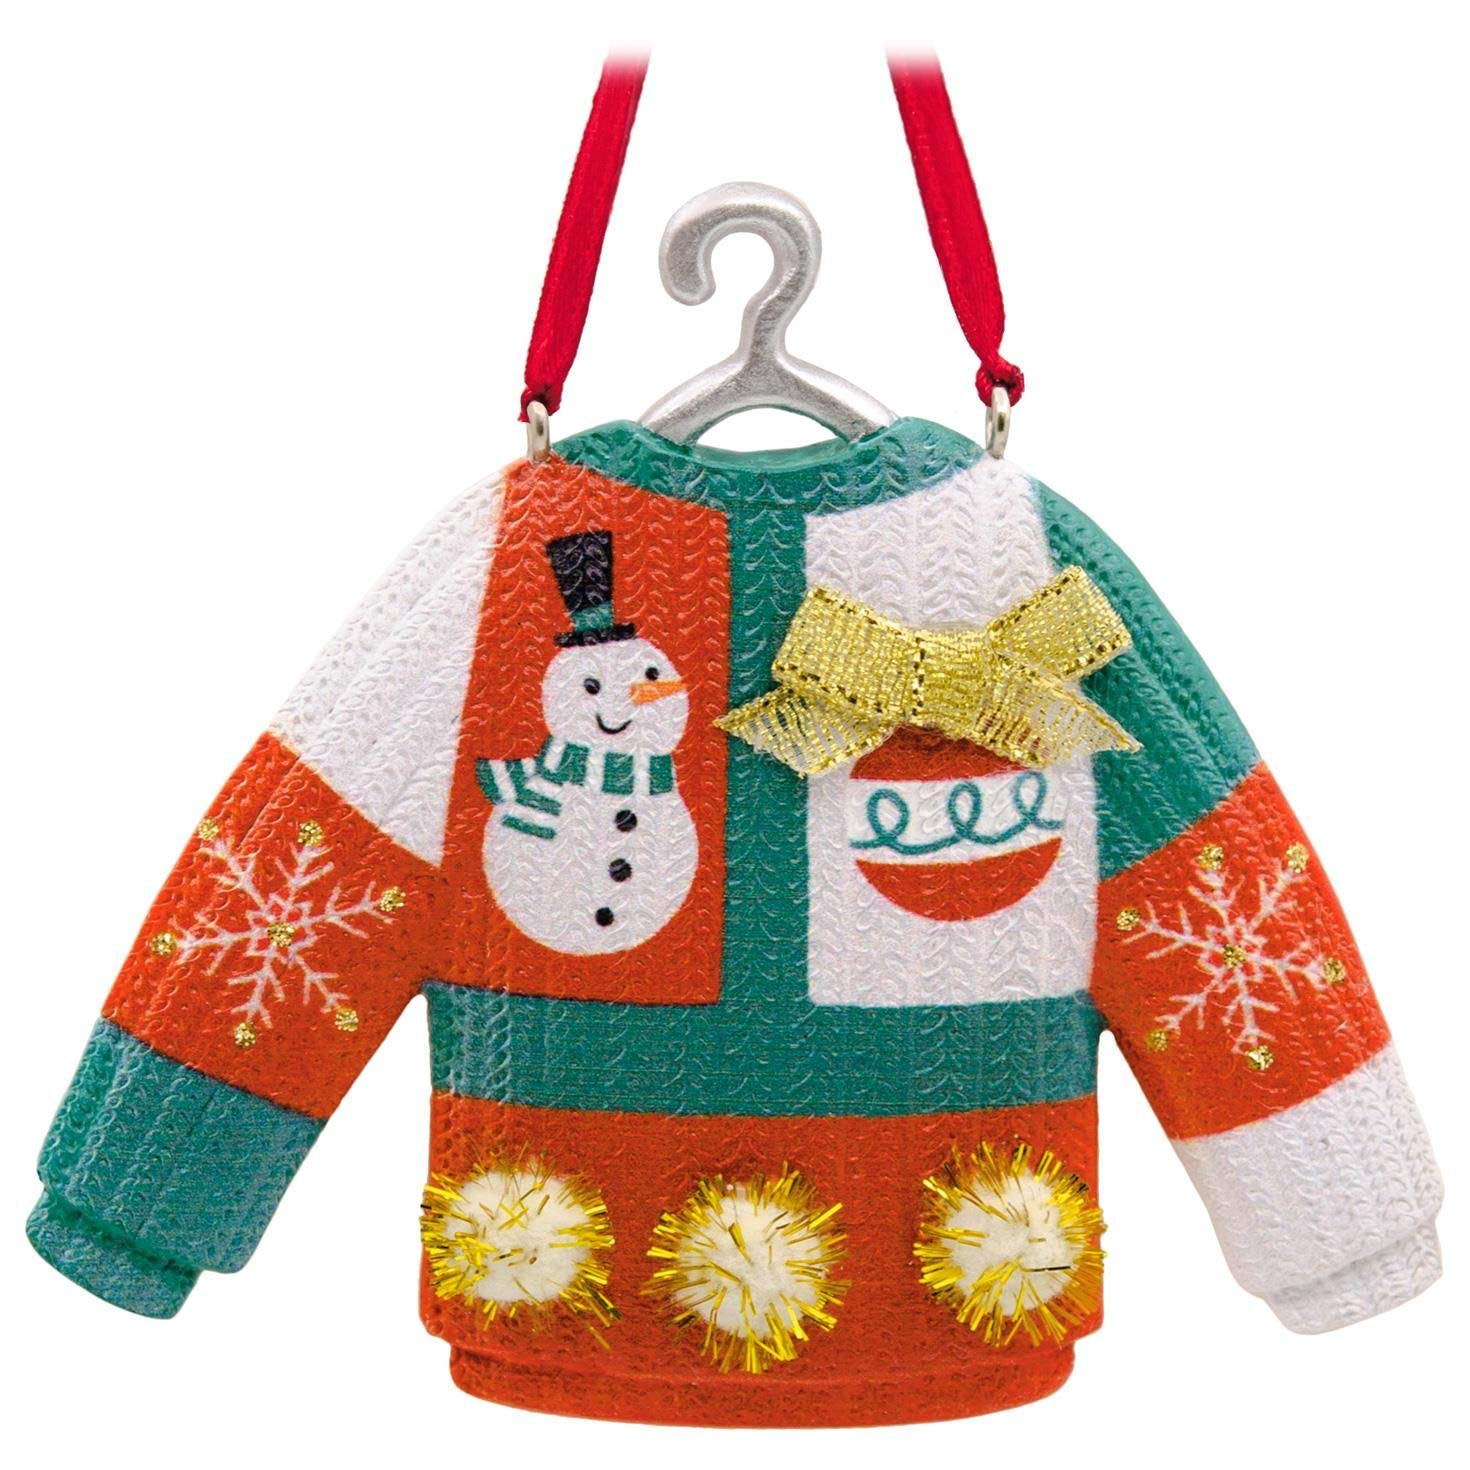 Hallmark Ugly Christmas Sweater Ornament